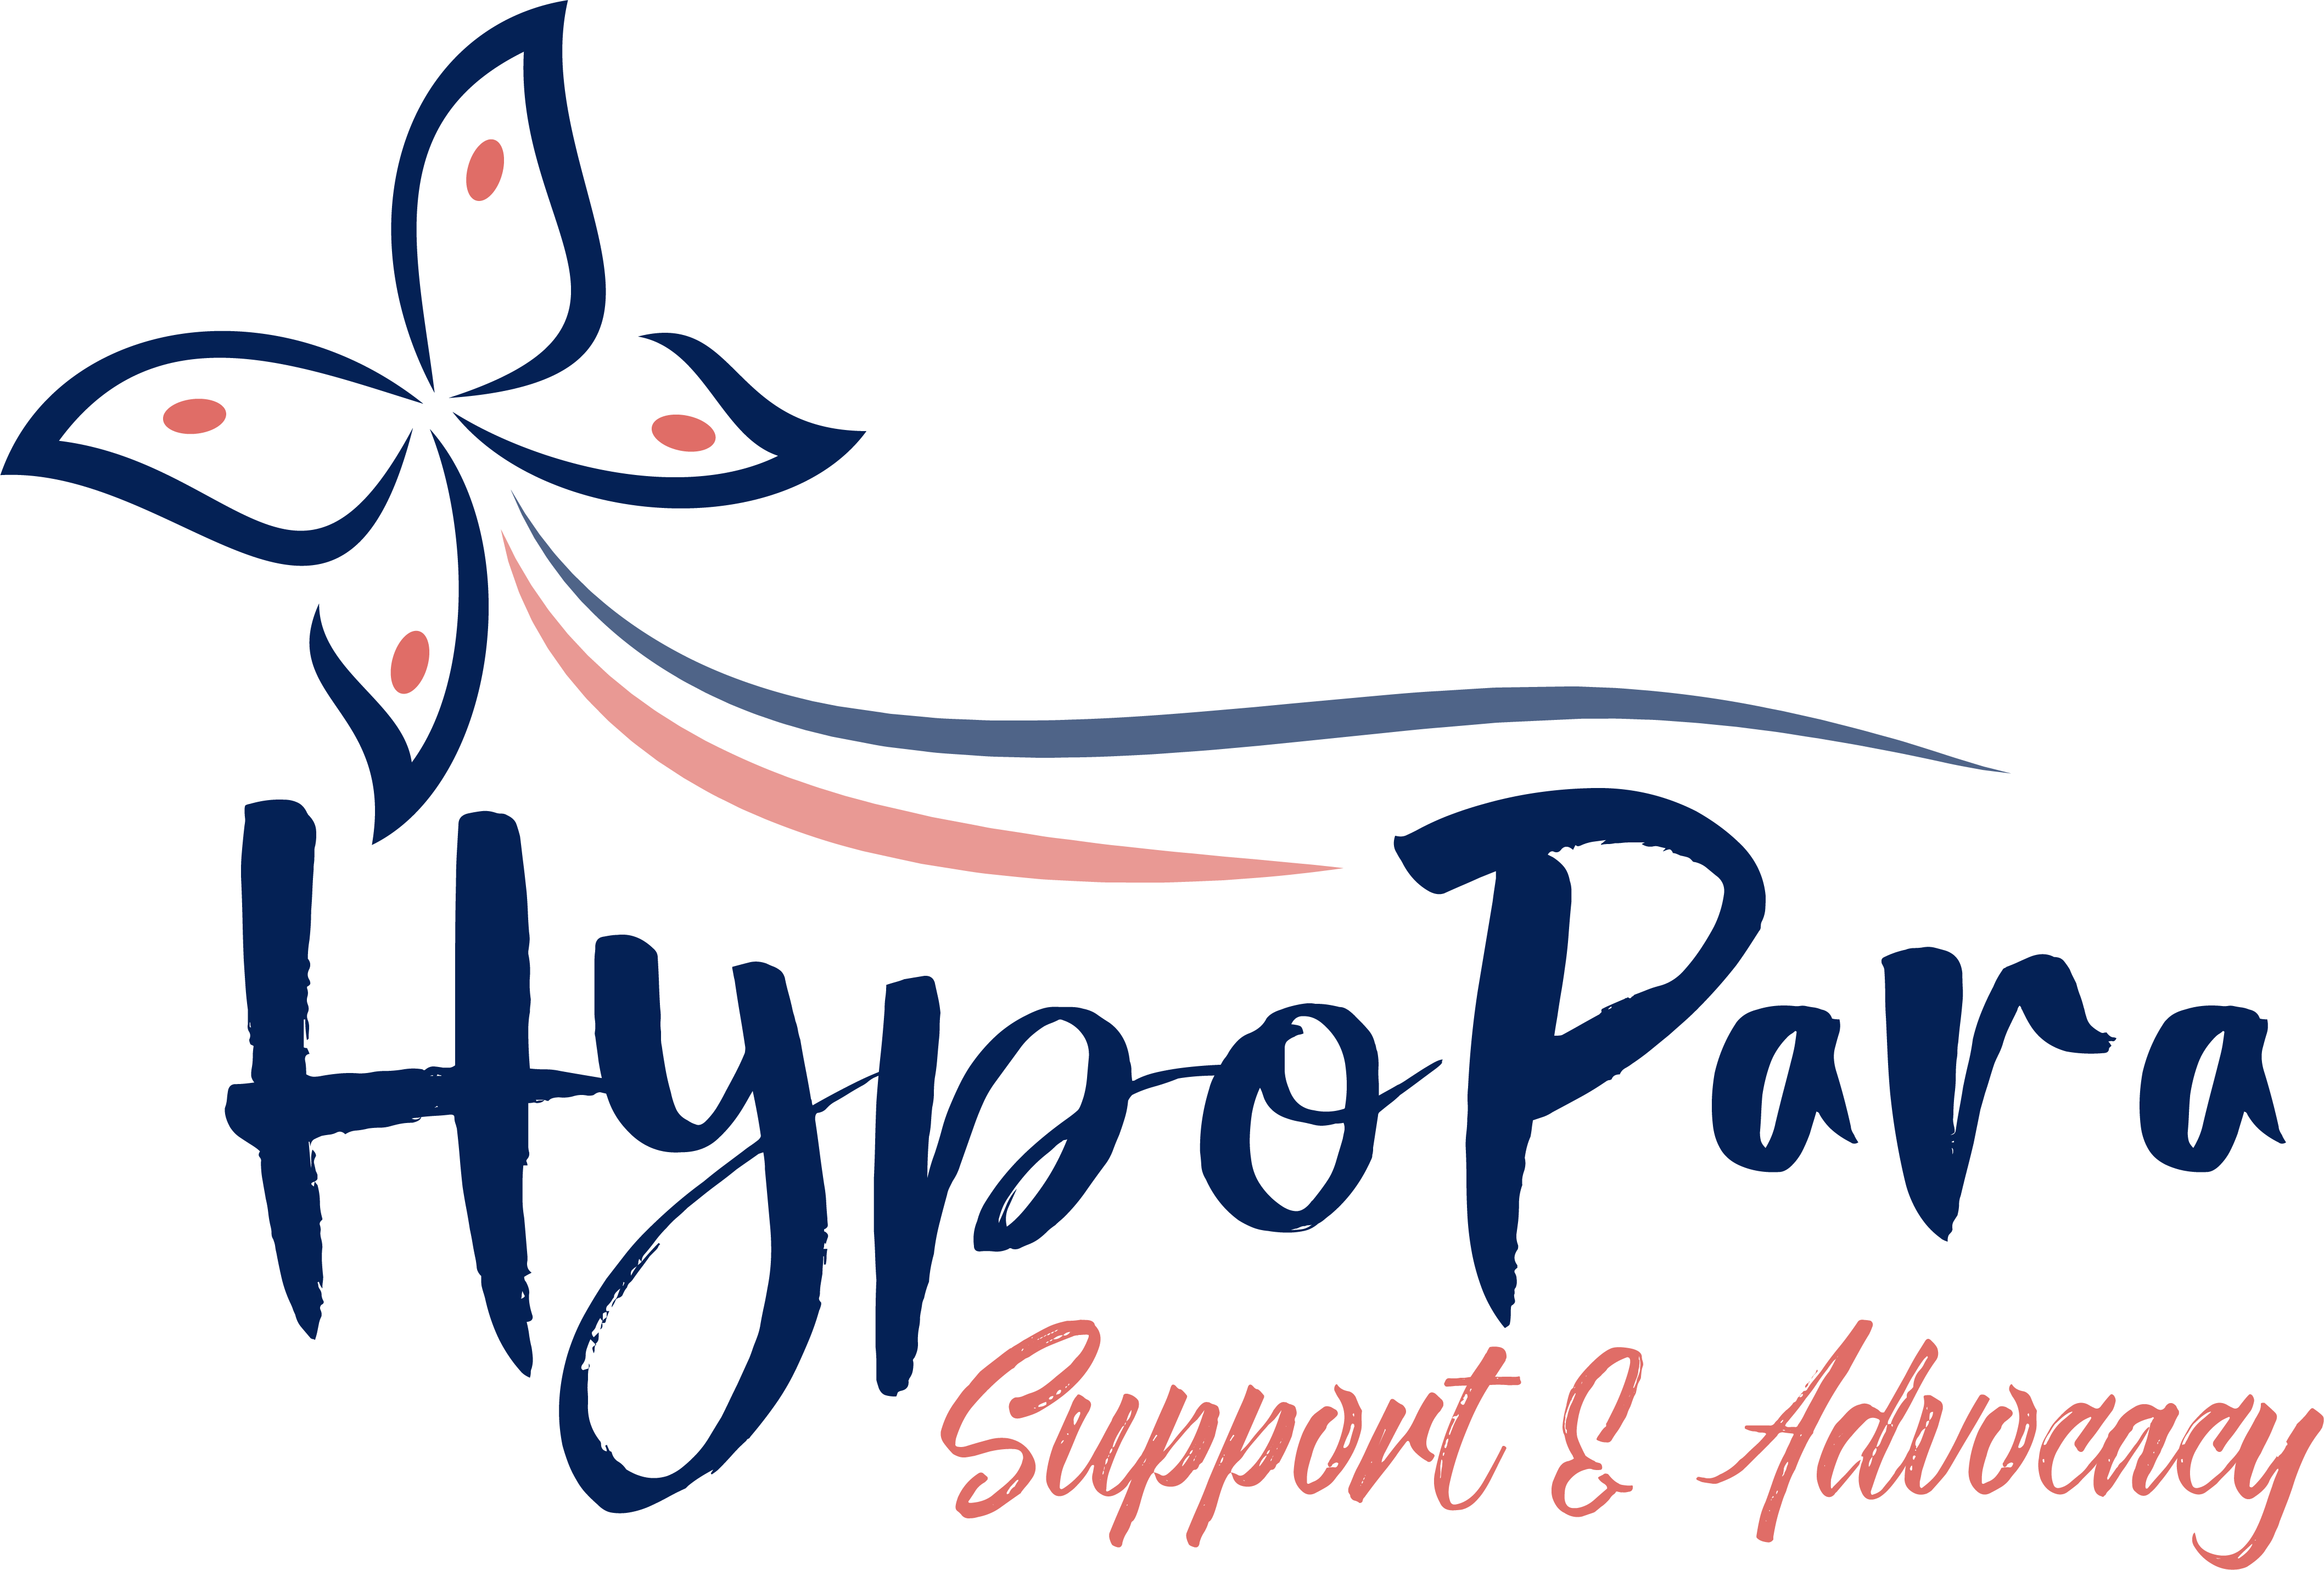 HypoPara Support & Advocacy Inc